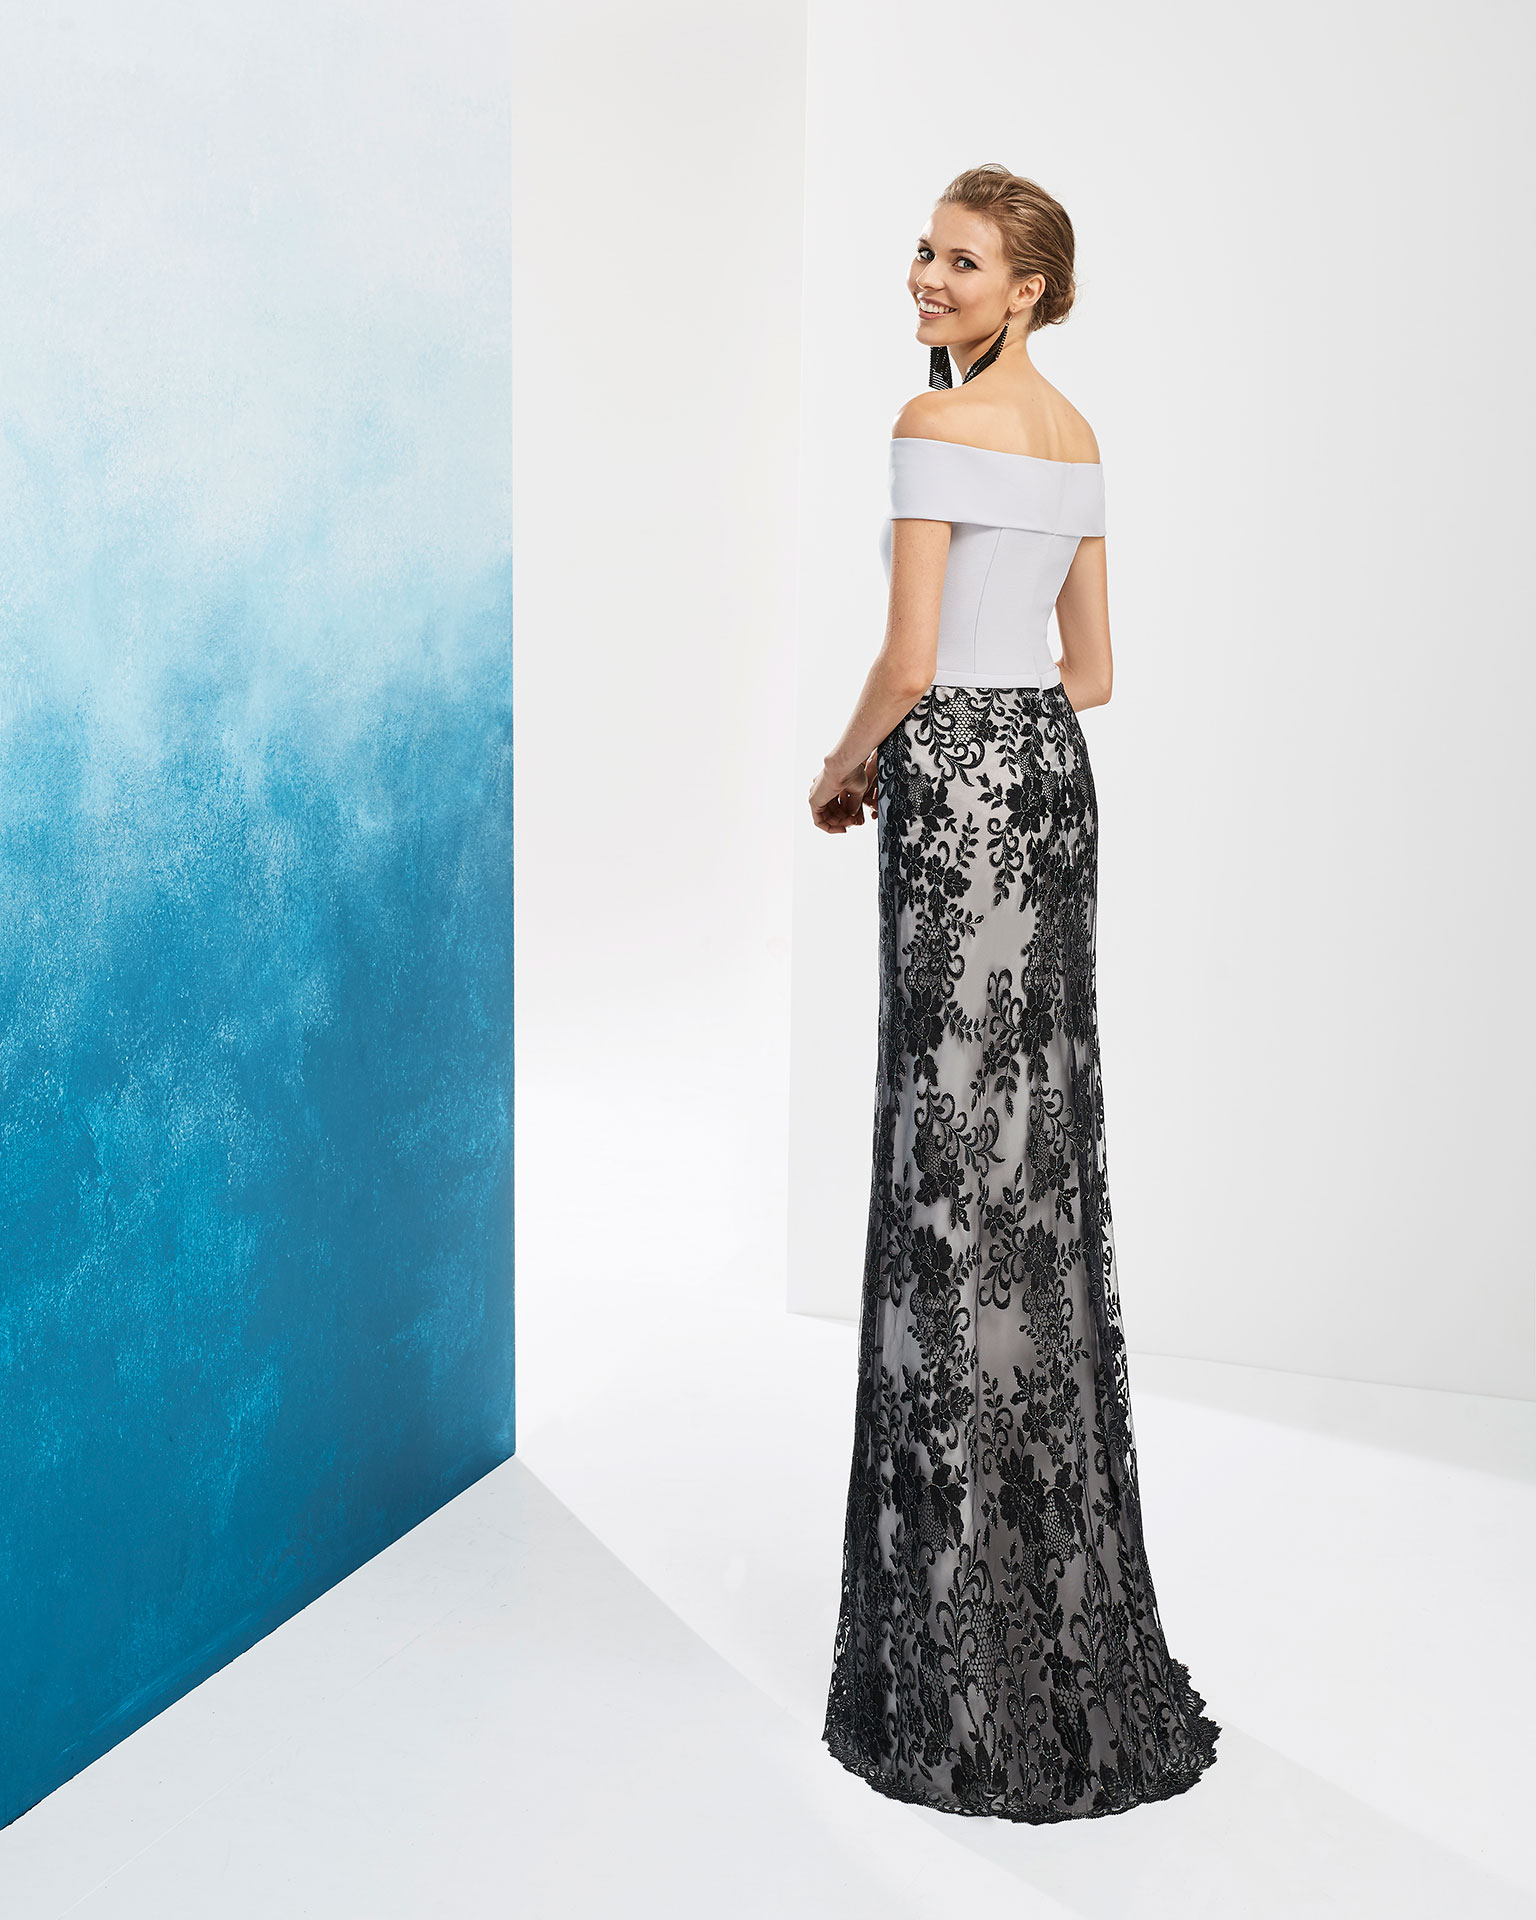 Lace cocktail dress. Crepe bodice, off-the-shoulder neckline and bow at the waist. Available in silver/black, dusty pink/black and aquamarine. 2019 FIESTA AIRE BARCELONA Collection.